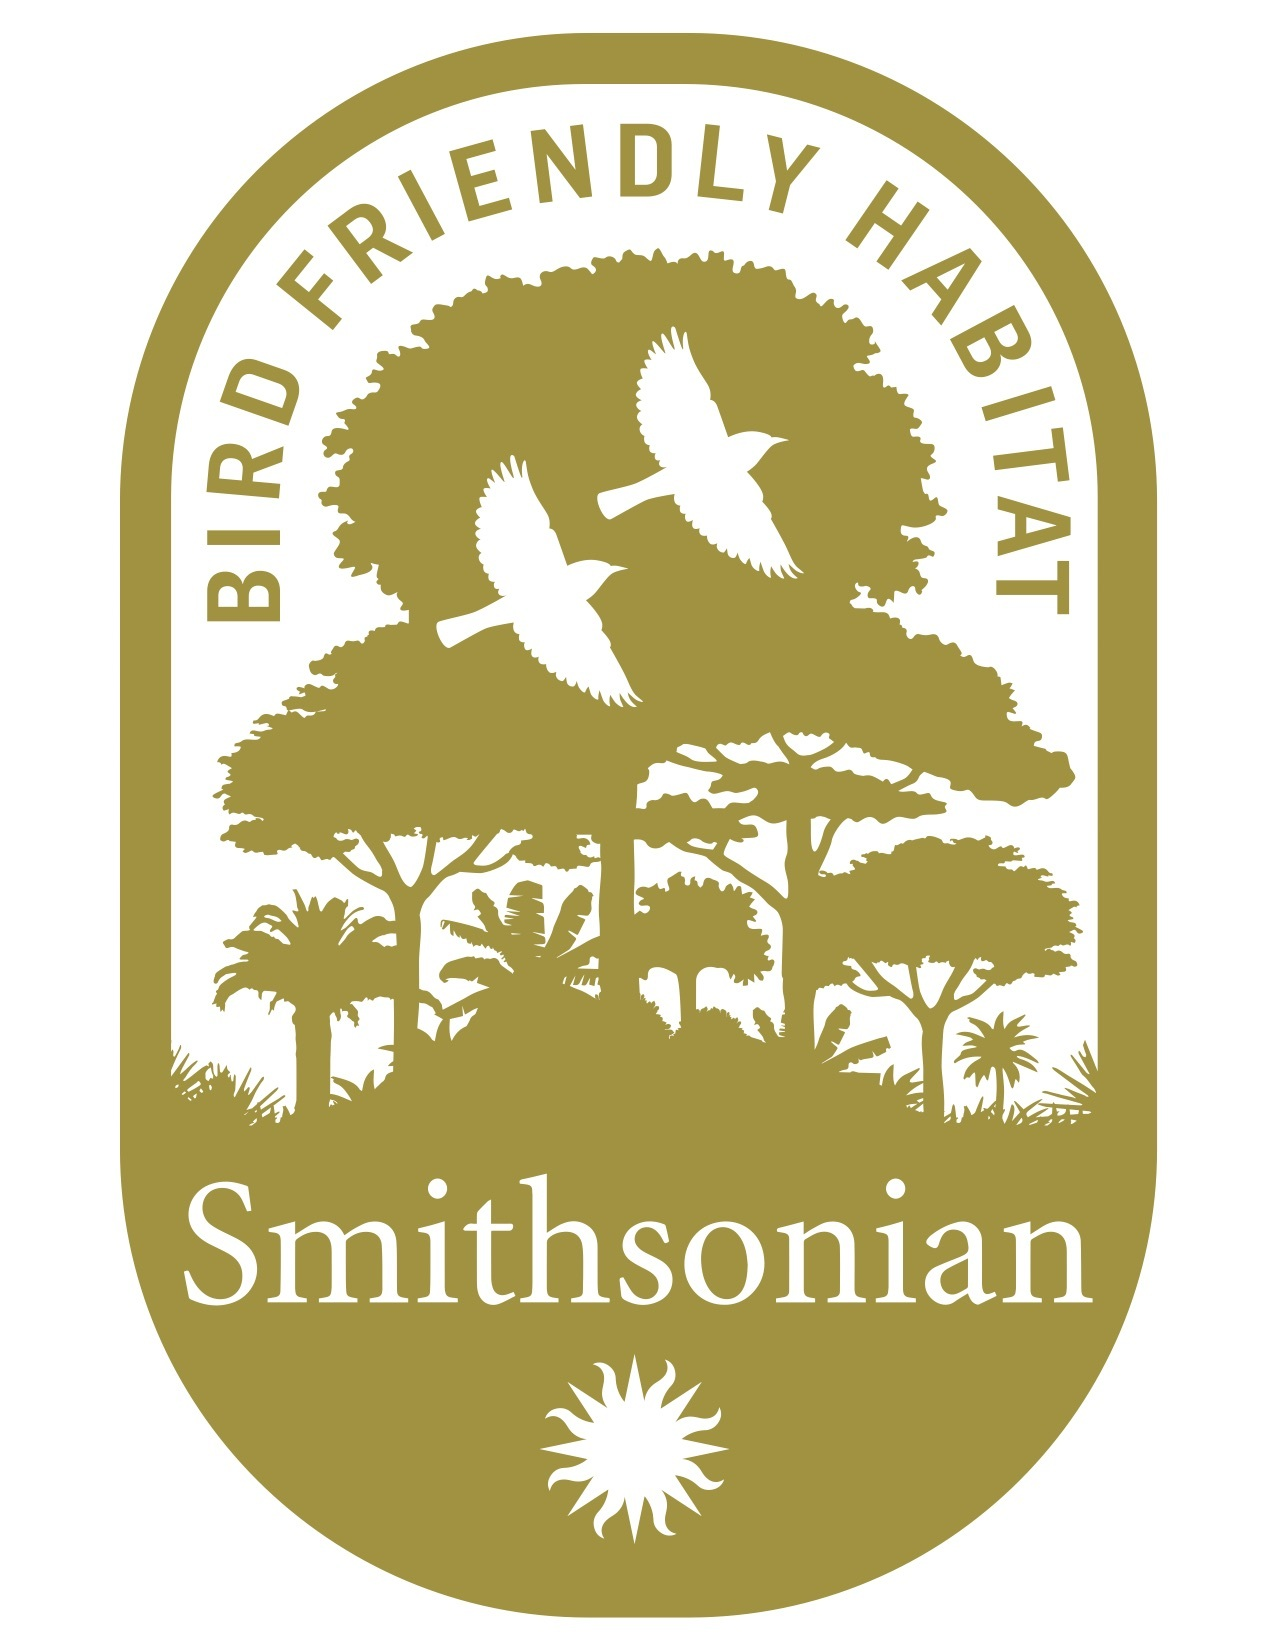 Smithsonian Bird Friendly